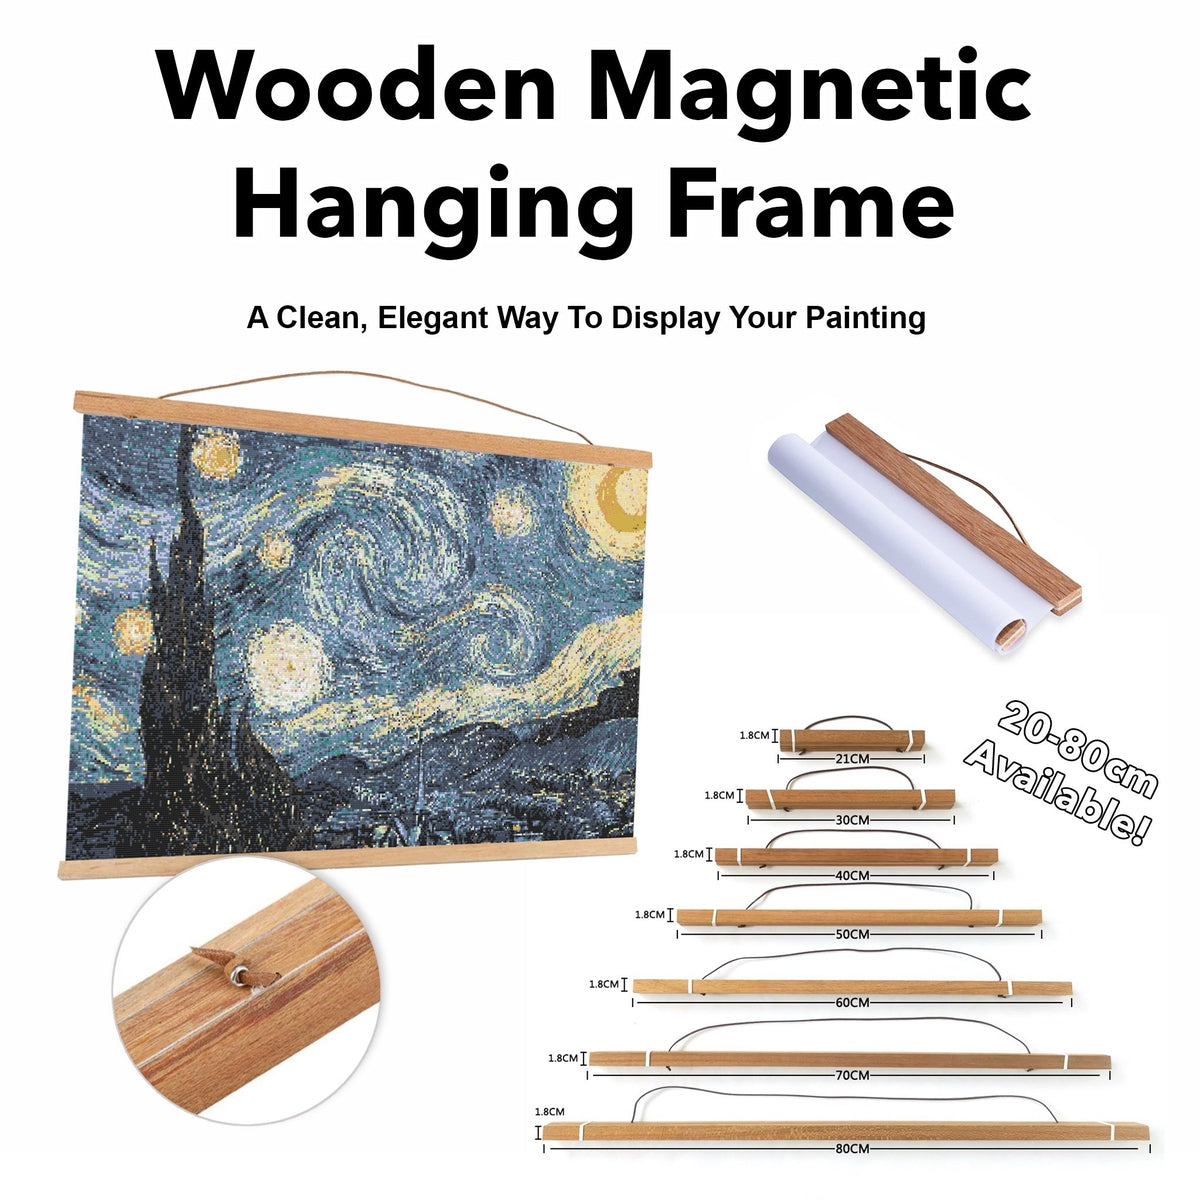 Wooden Magnetic Hanging Frame